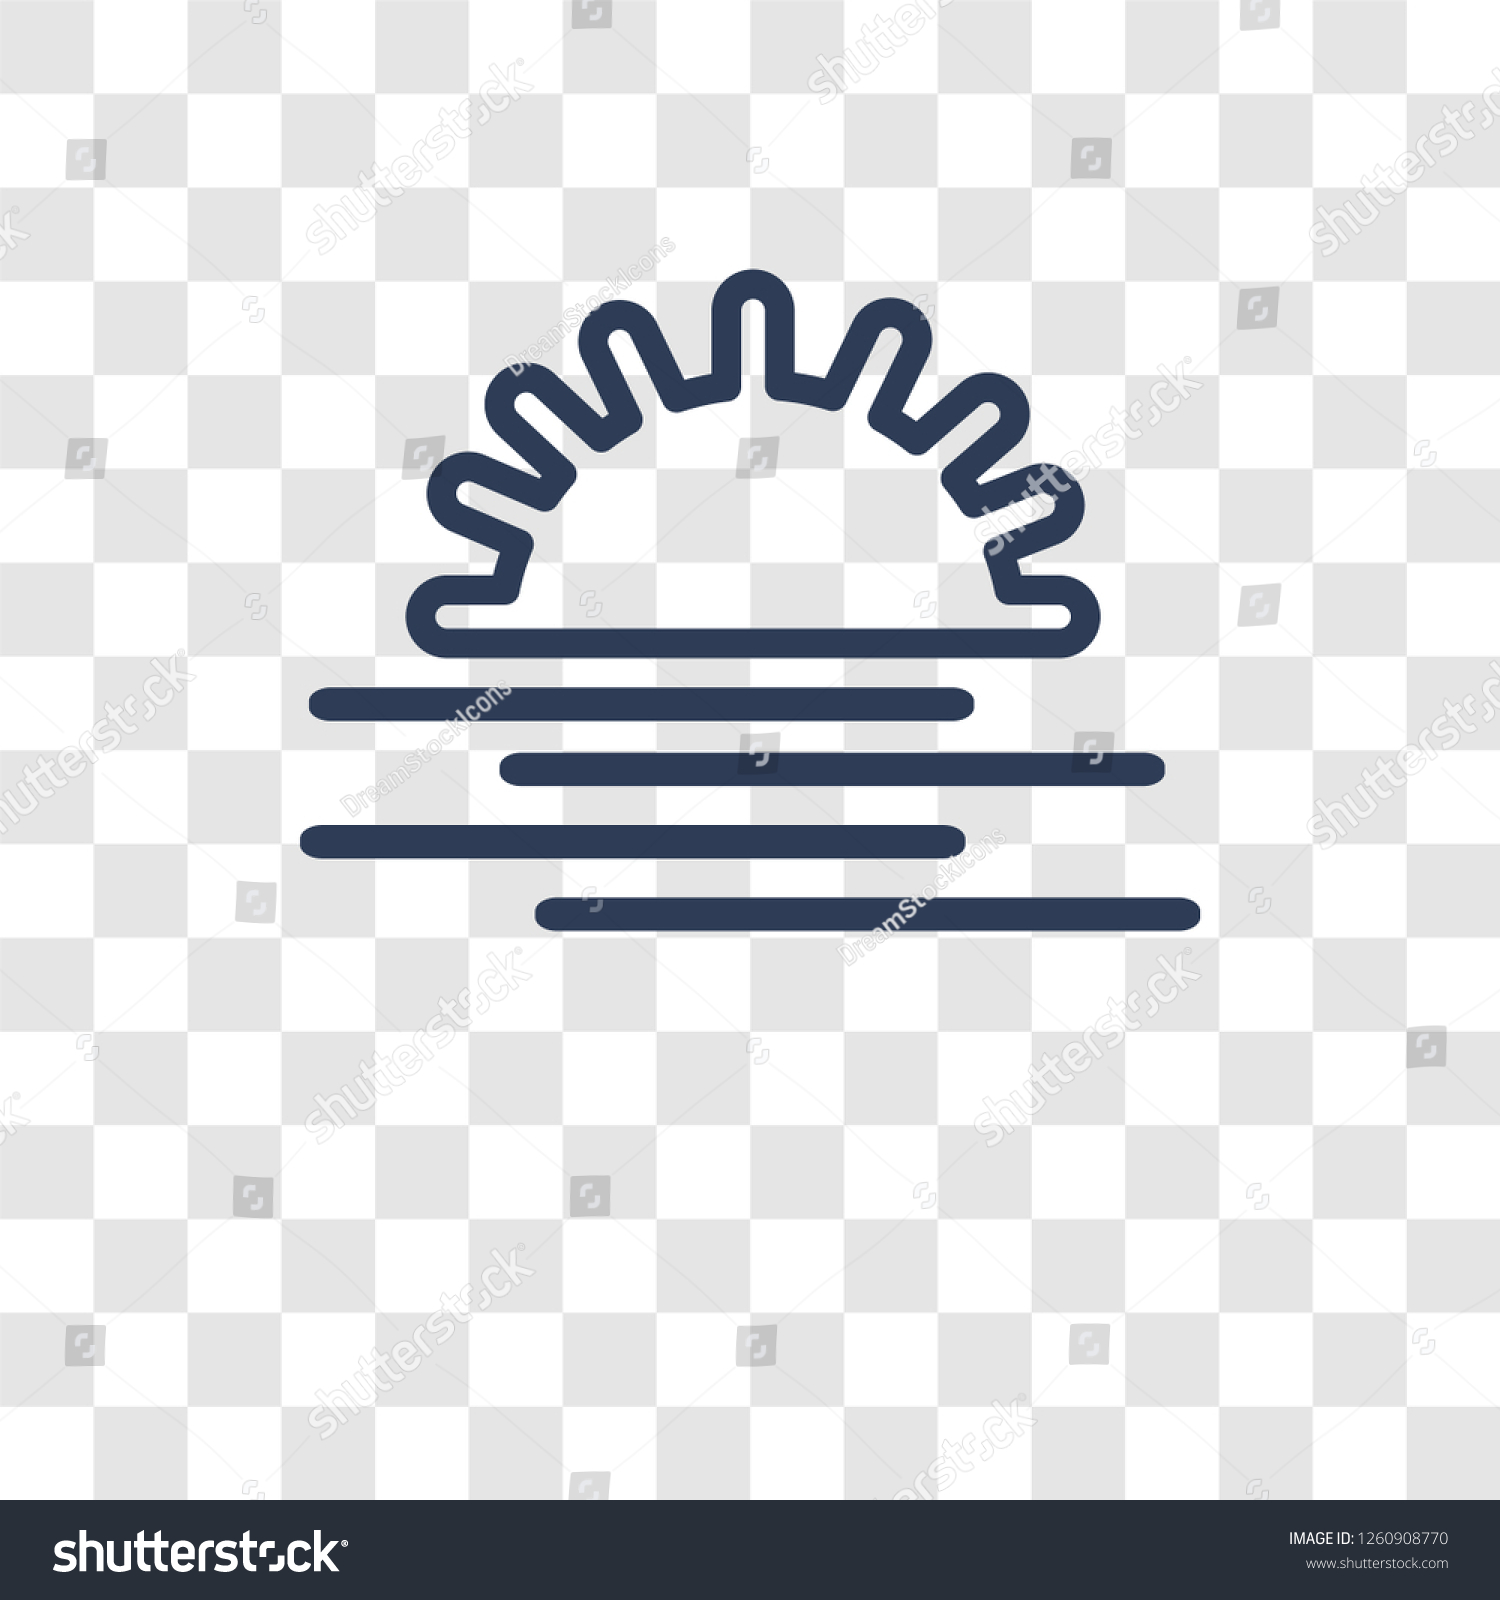 sunset sea icon trendy sunset sea stock vector royalty free 1260908770 shutterstock